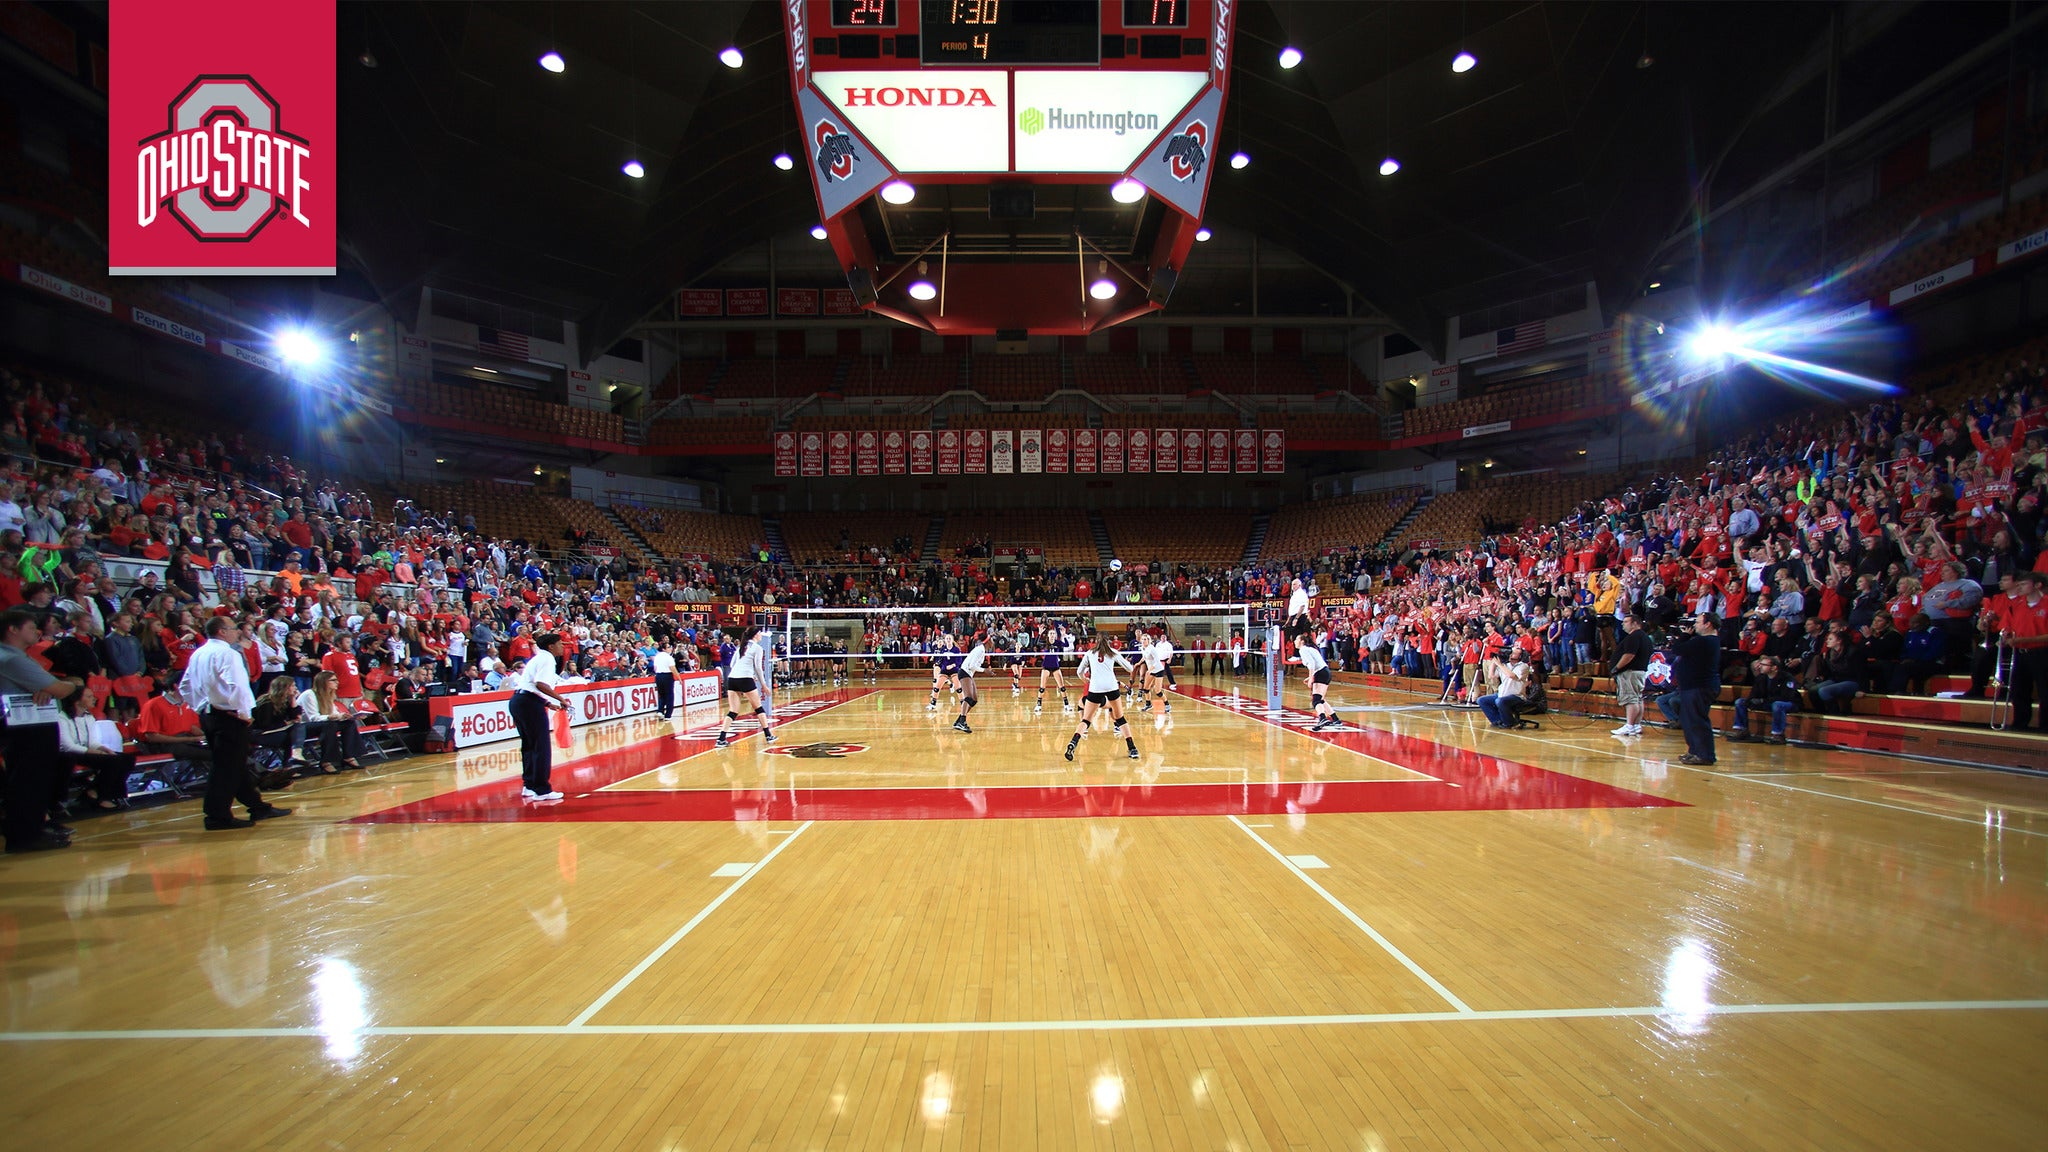 Ohio State Buckeyes Womens Volleyball vs. Rutgers Scarlet Knights Womens Volleyball